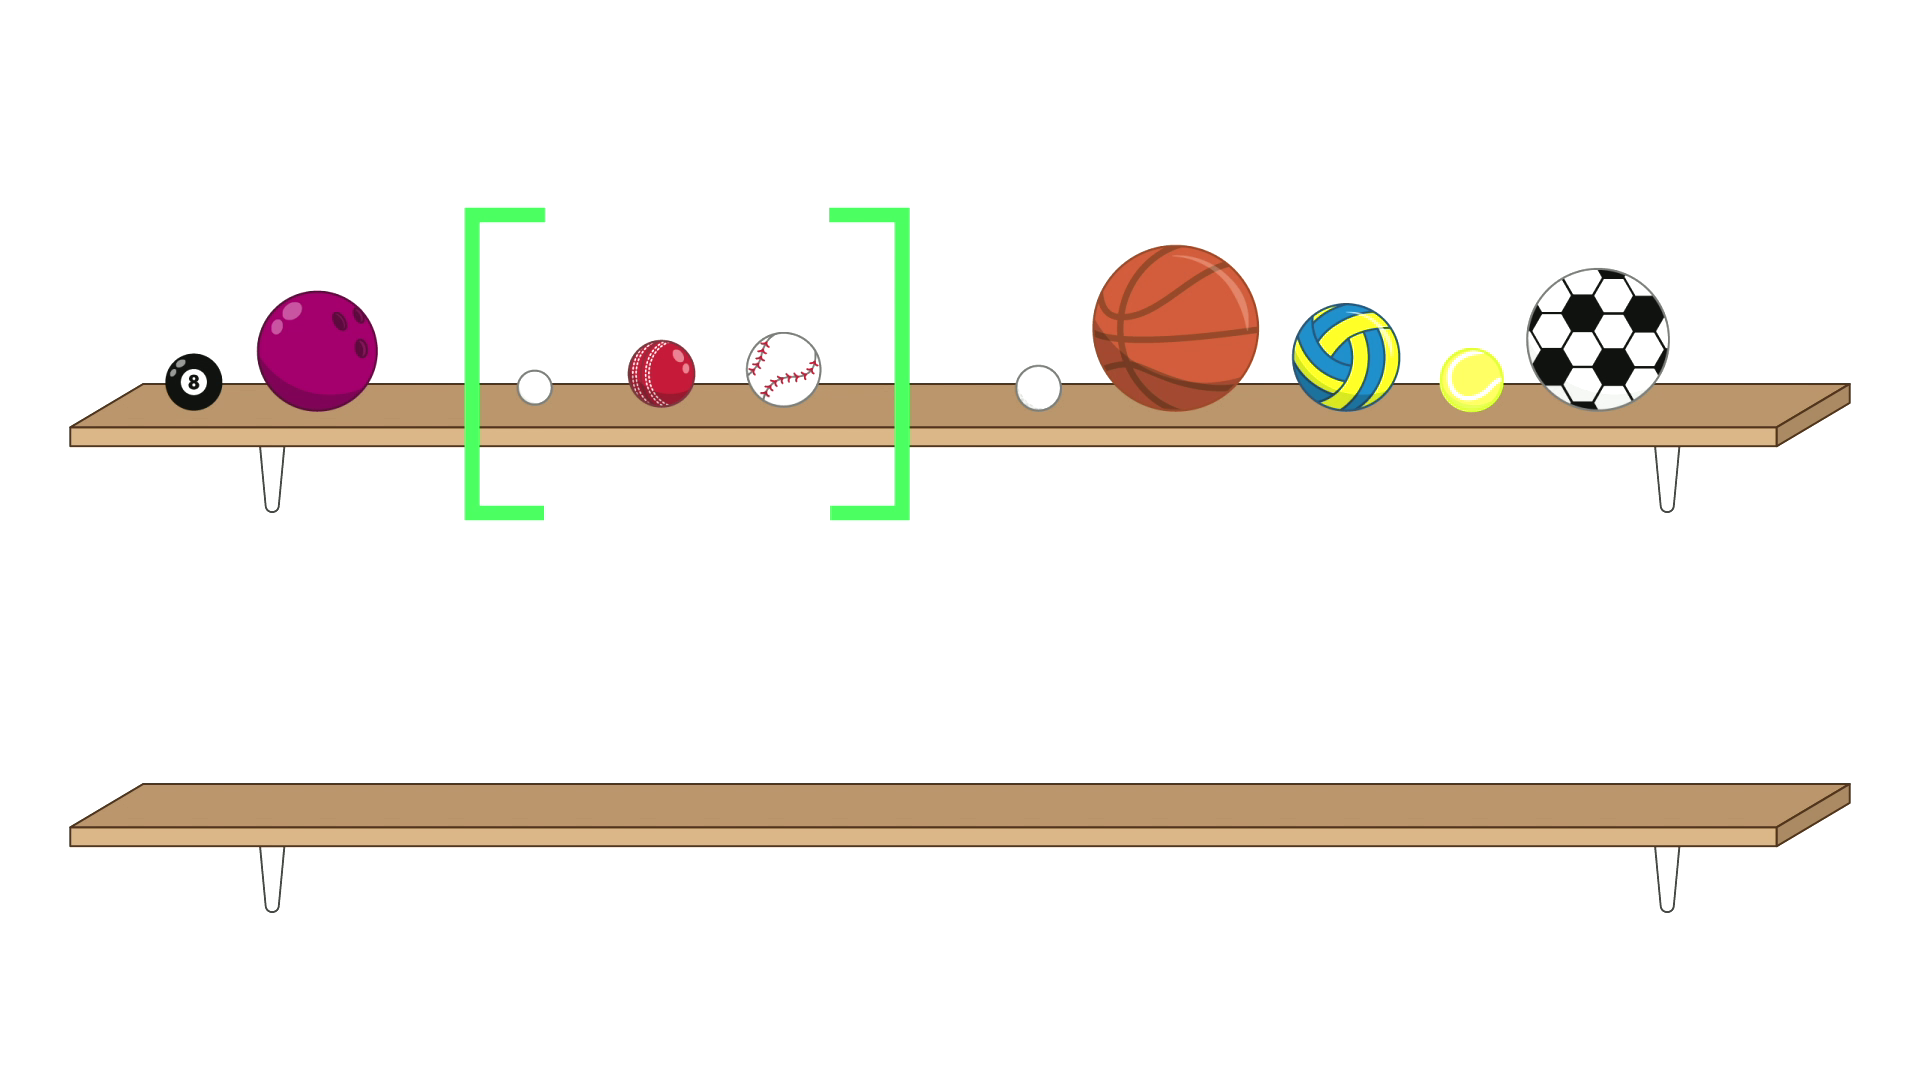 10 balls on the top shelf. The pool ball is first, followed by the bowling ball. The next three balls, a ping-pong ball, a cricket ball and a baseball, are surrounded by a pair of green brackets, and are in size order. After the brackets are the remaining five balls: a golf ball, a basketball, a netball, a tennis ball and a soccer ball. The bottom shelf is empty.